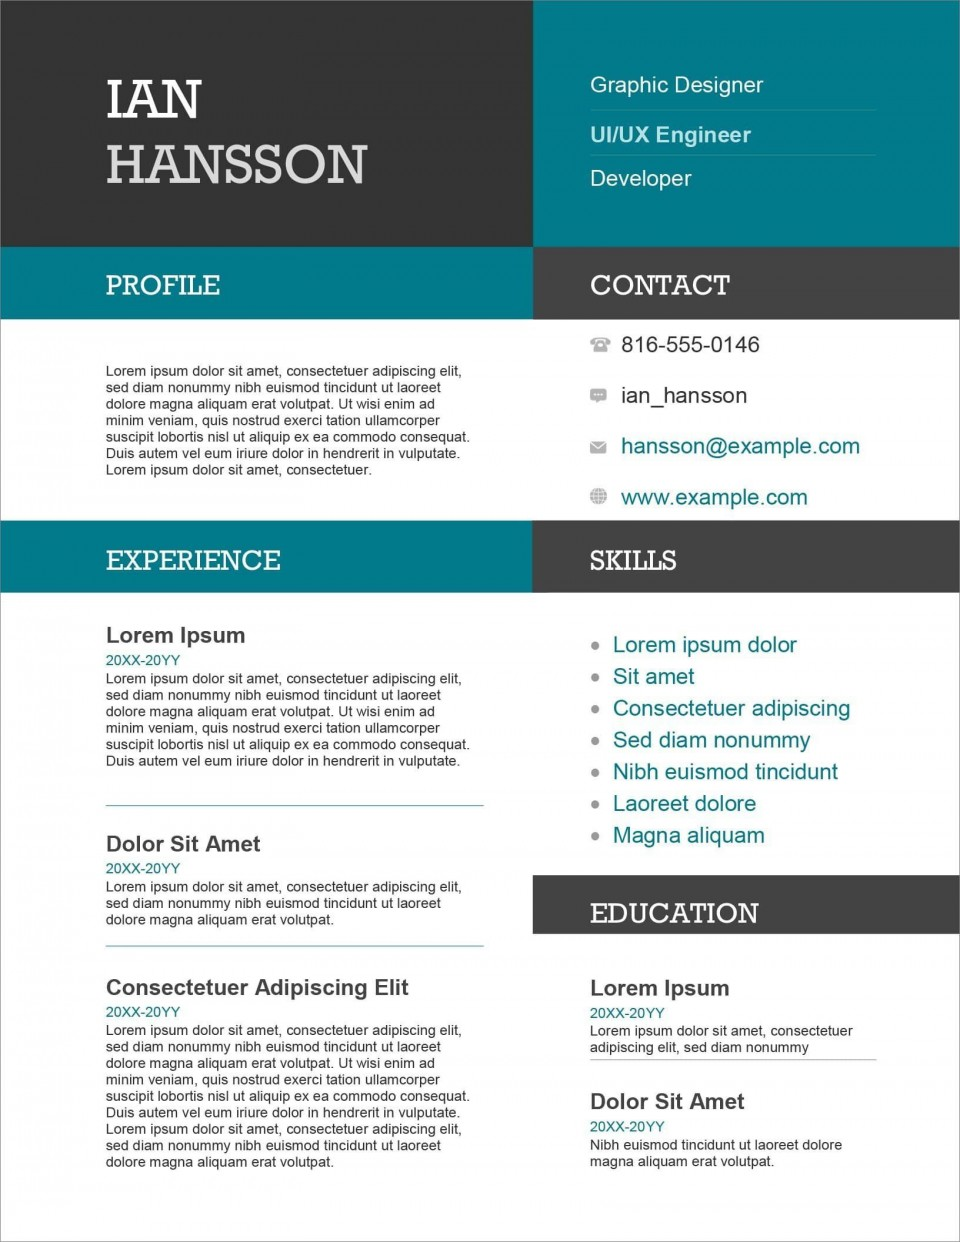 005 Awesome Resume Microsoft Word Template High Resolution  Cv/resume Design Tutorial With Federal Download960